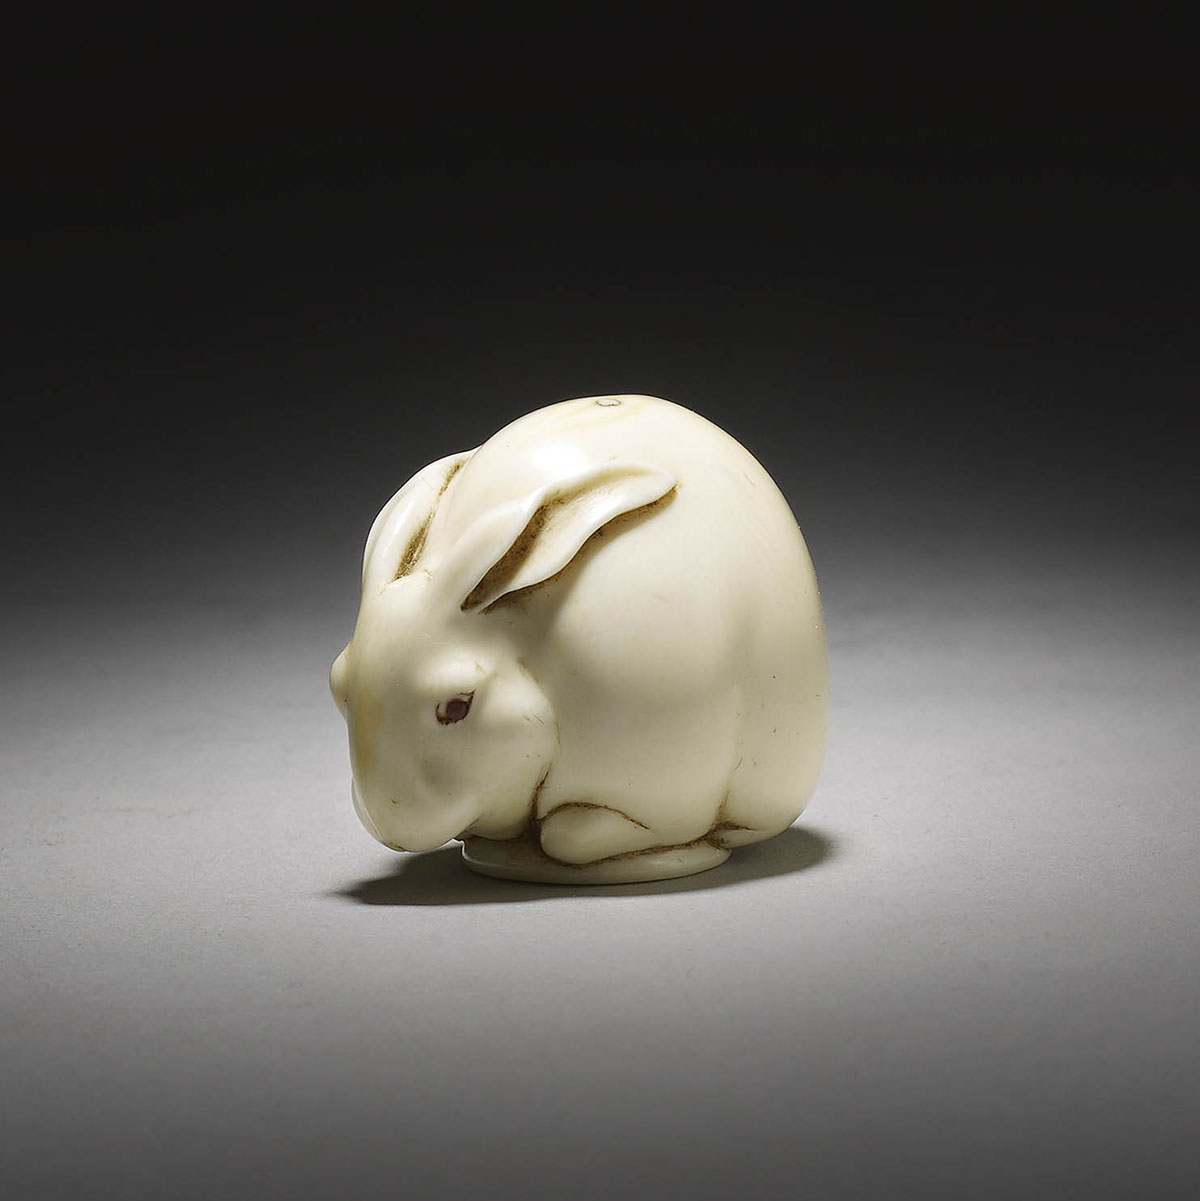 Ivory netsuke of rabbit or hare by Ueda Kōhōsai, MR3305_v1